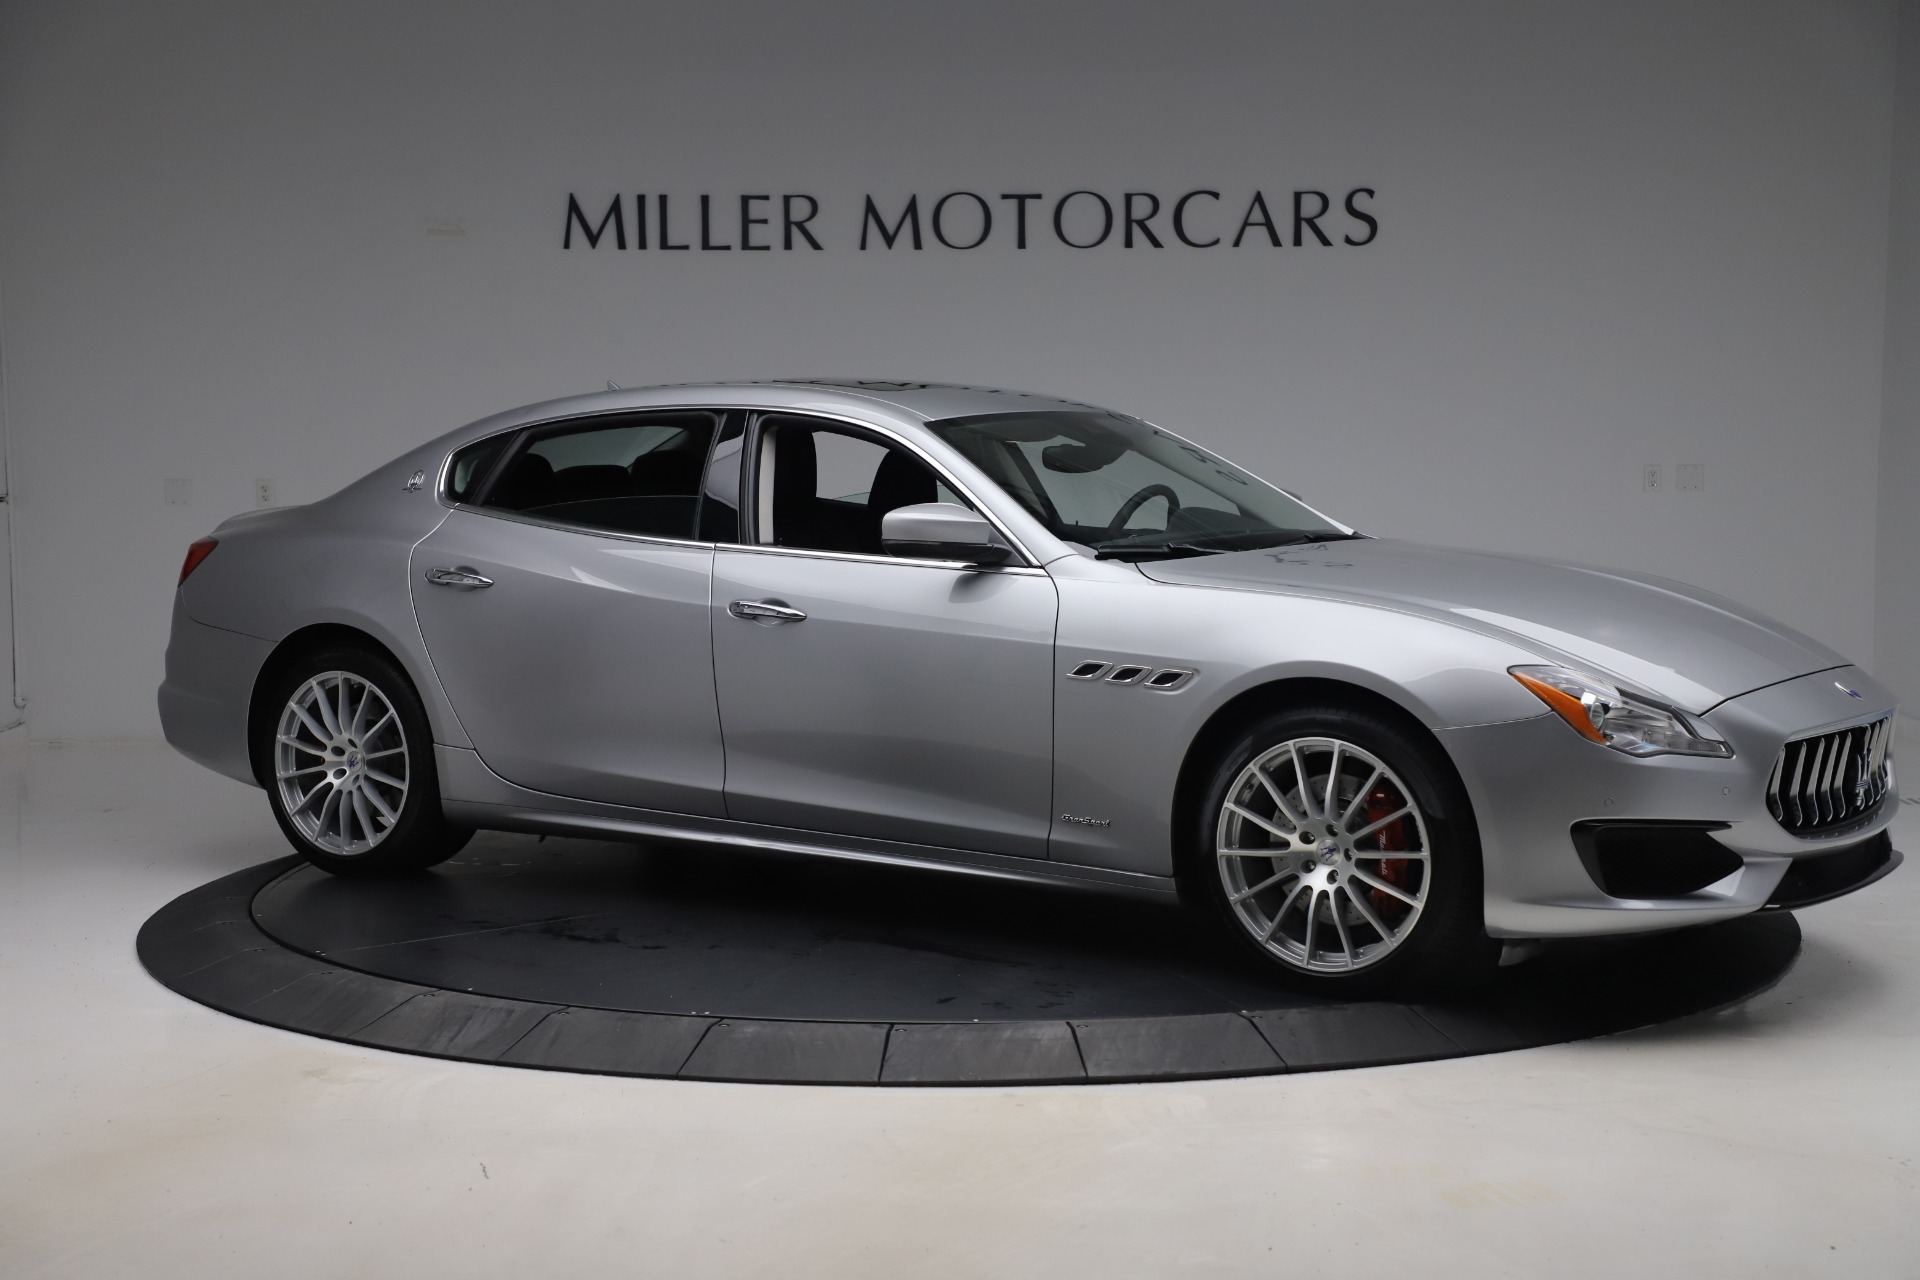 New 2017 Maserati Quattroporte S Q4 GranSport For Sale In Westport, CT 693_p10